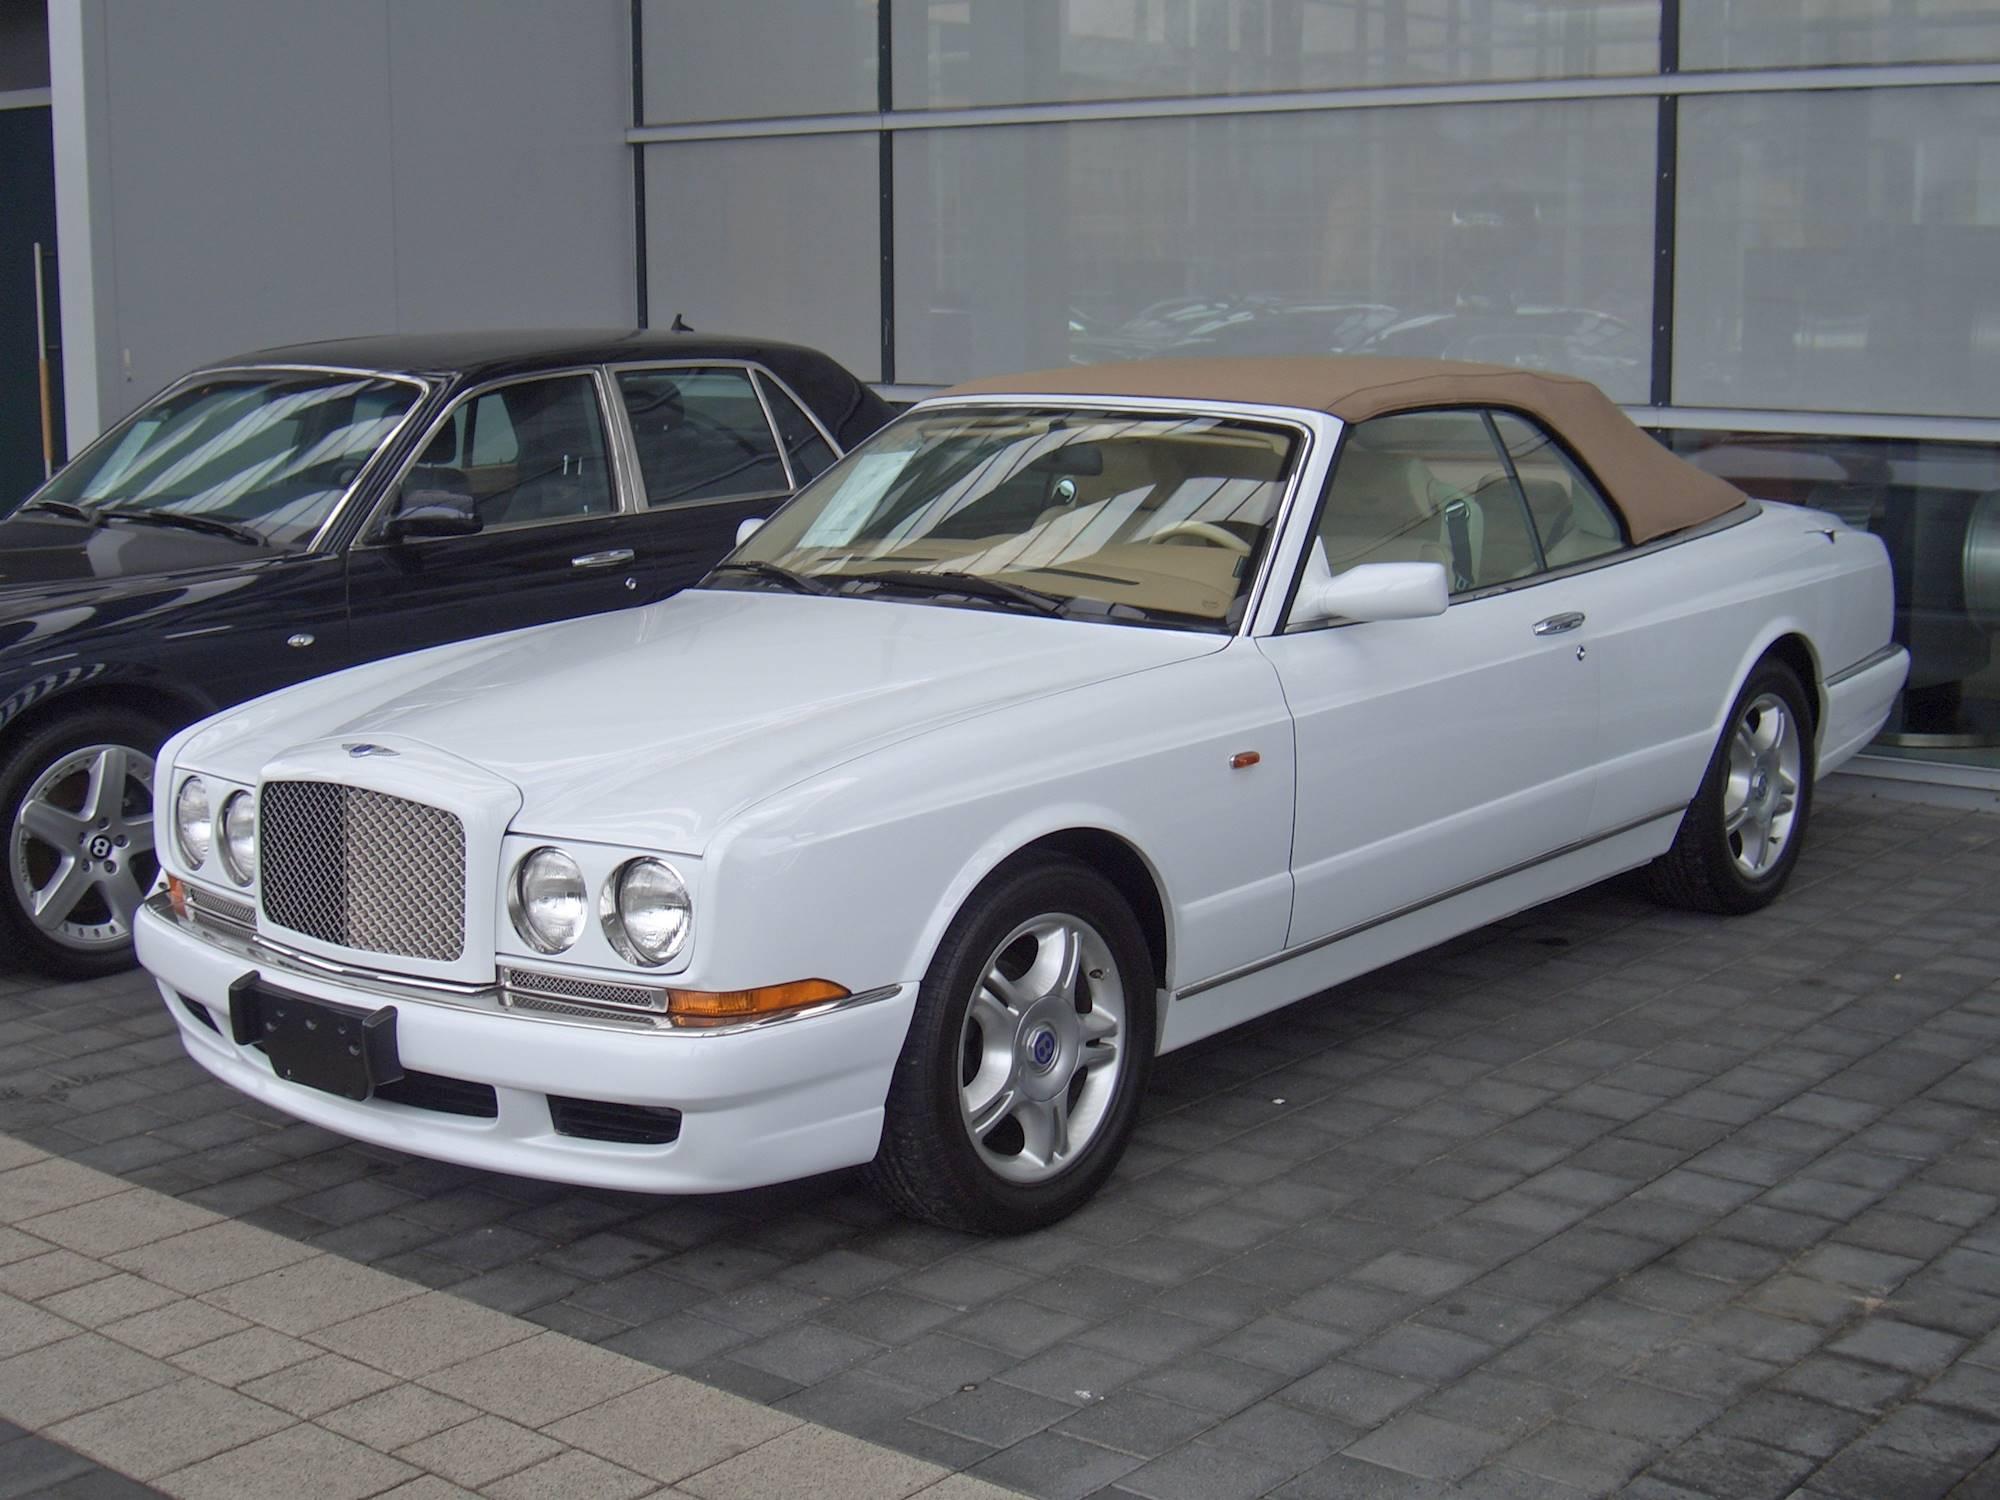 2002 Bentley Continental Owners Manual